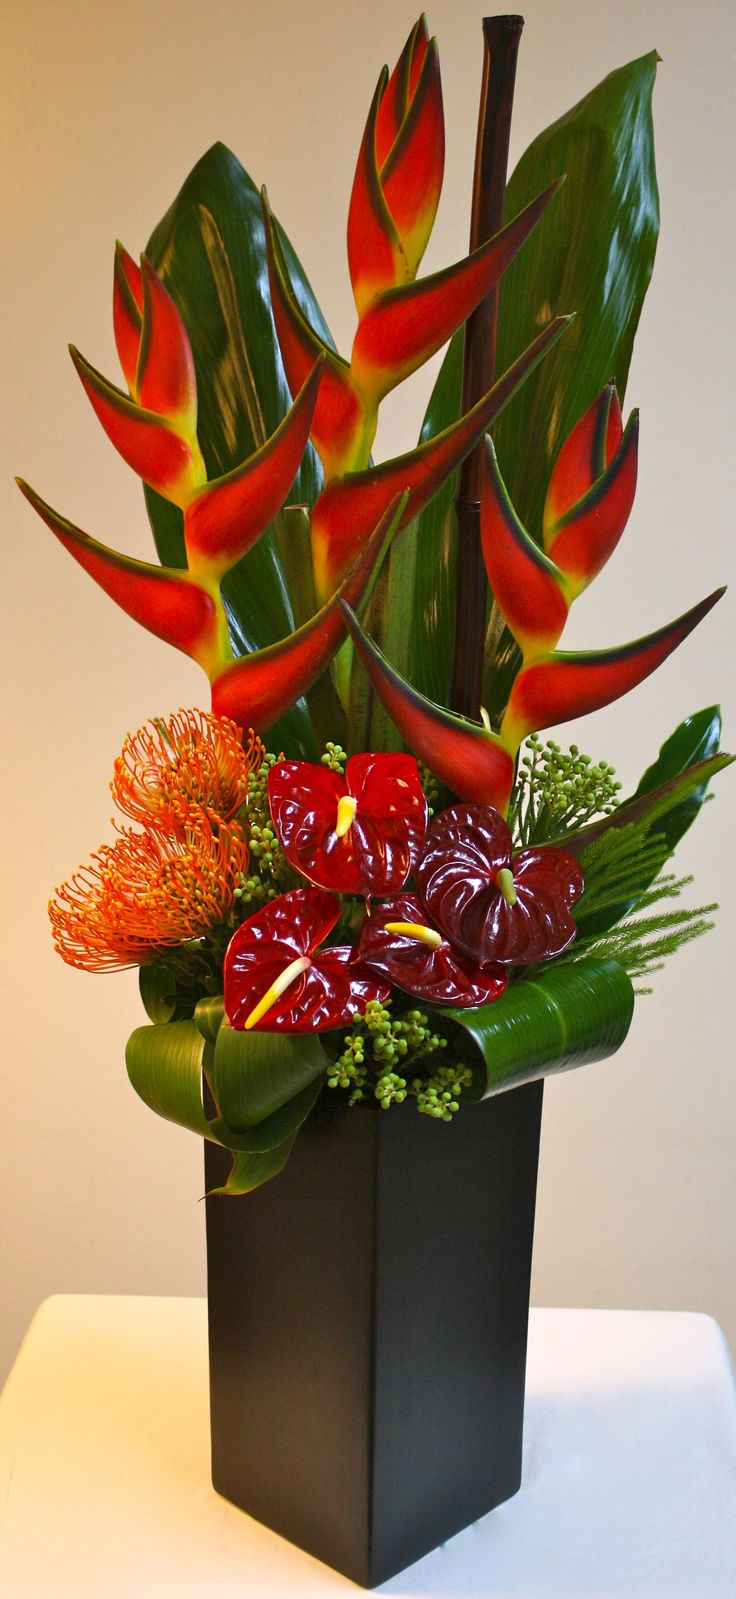 //Jordan: A tropical mix of Orange Birds of Paradise, Orange Pin Cushions, Red Anthurium complimented with Green Tropical Leaves in a tall black ceramic vase. #floral #arrangement